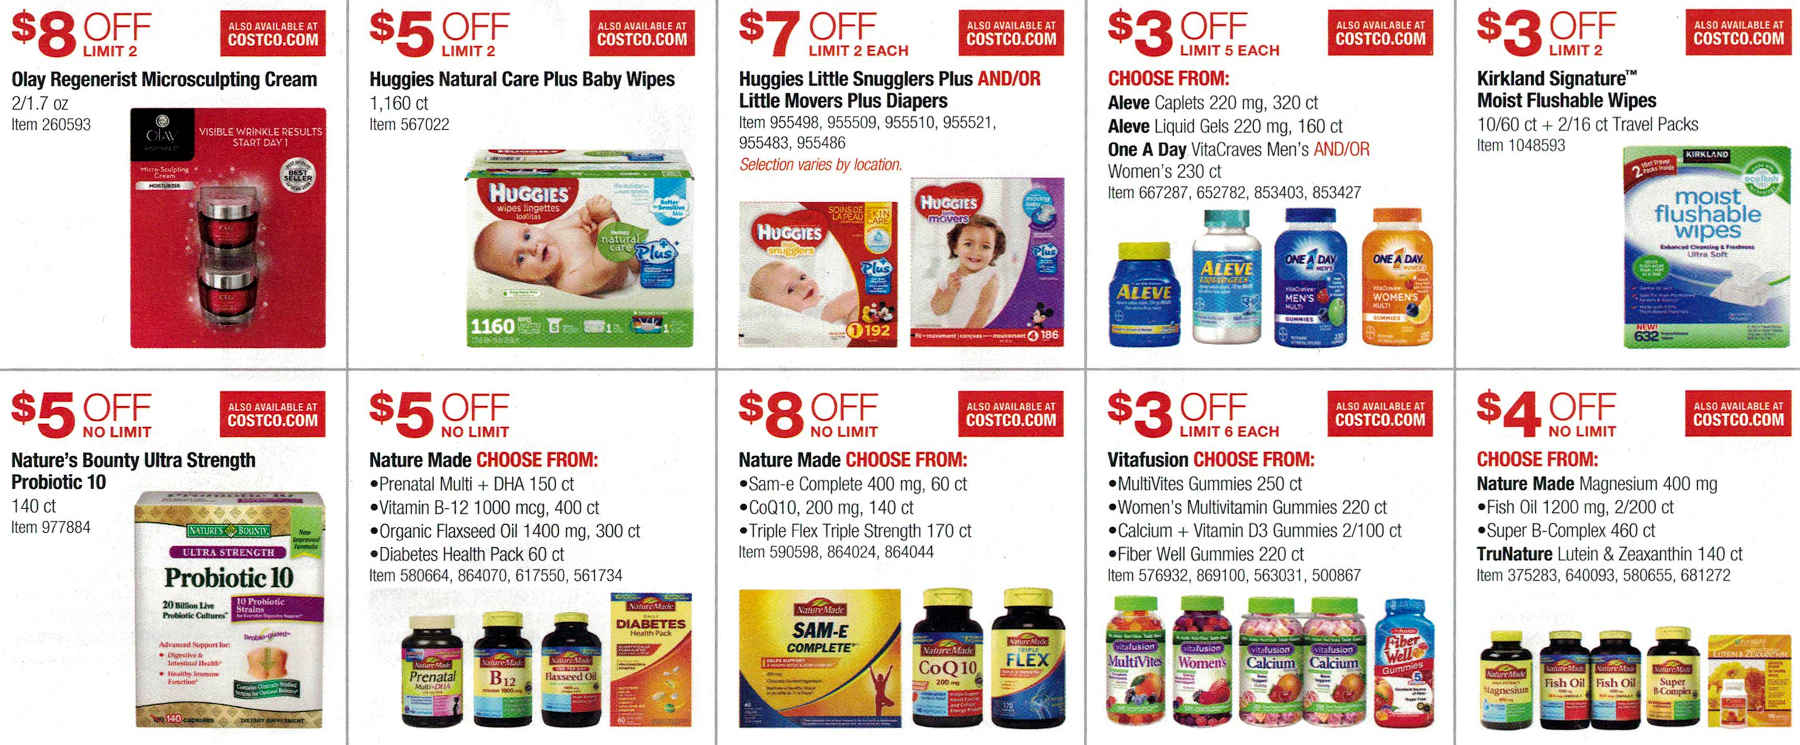 January 2017 Costco Coupon Book Page 10